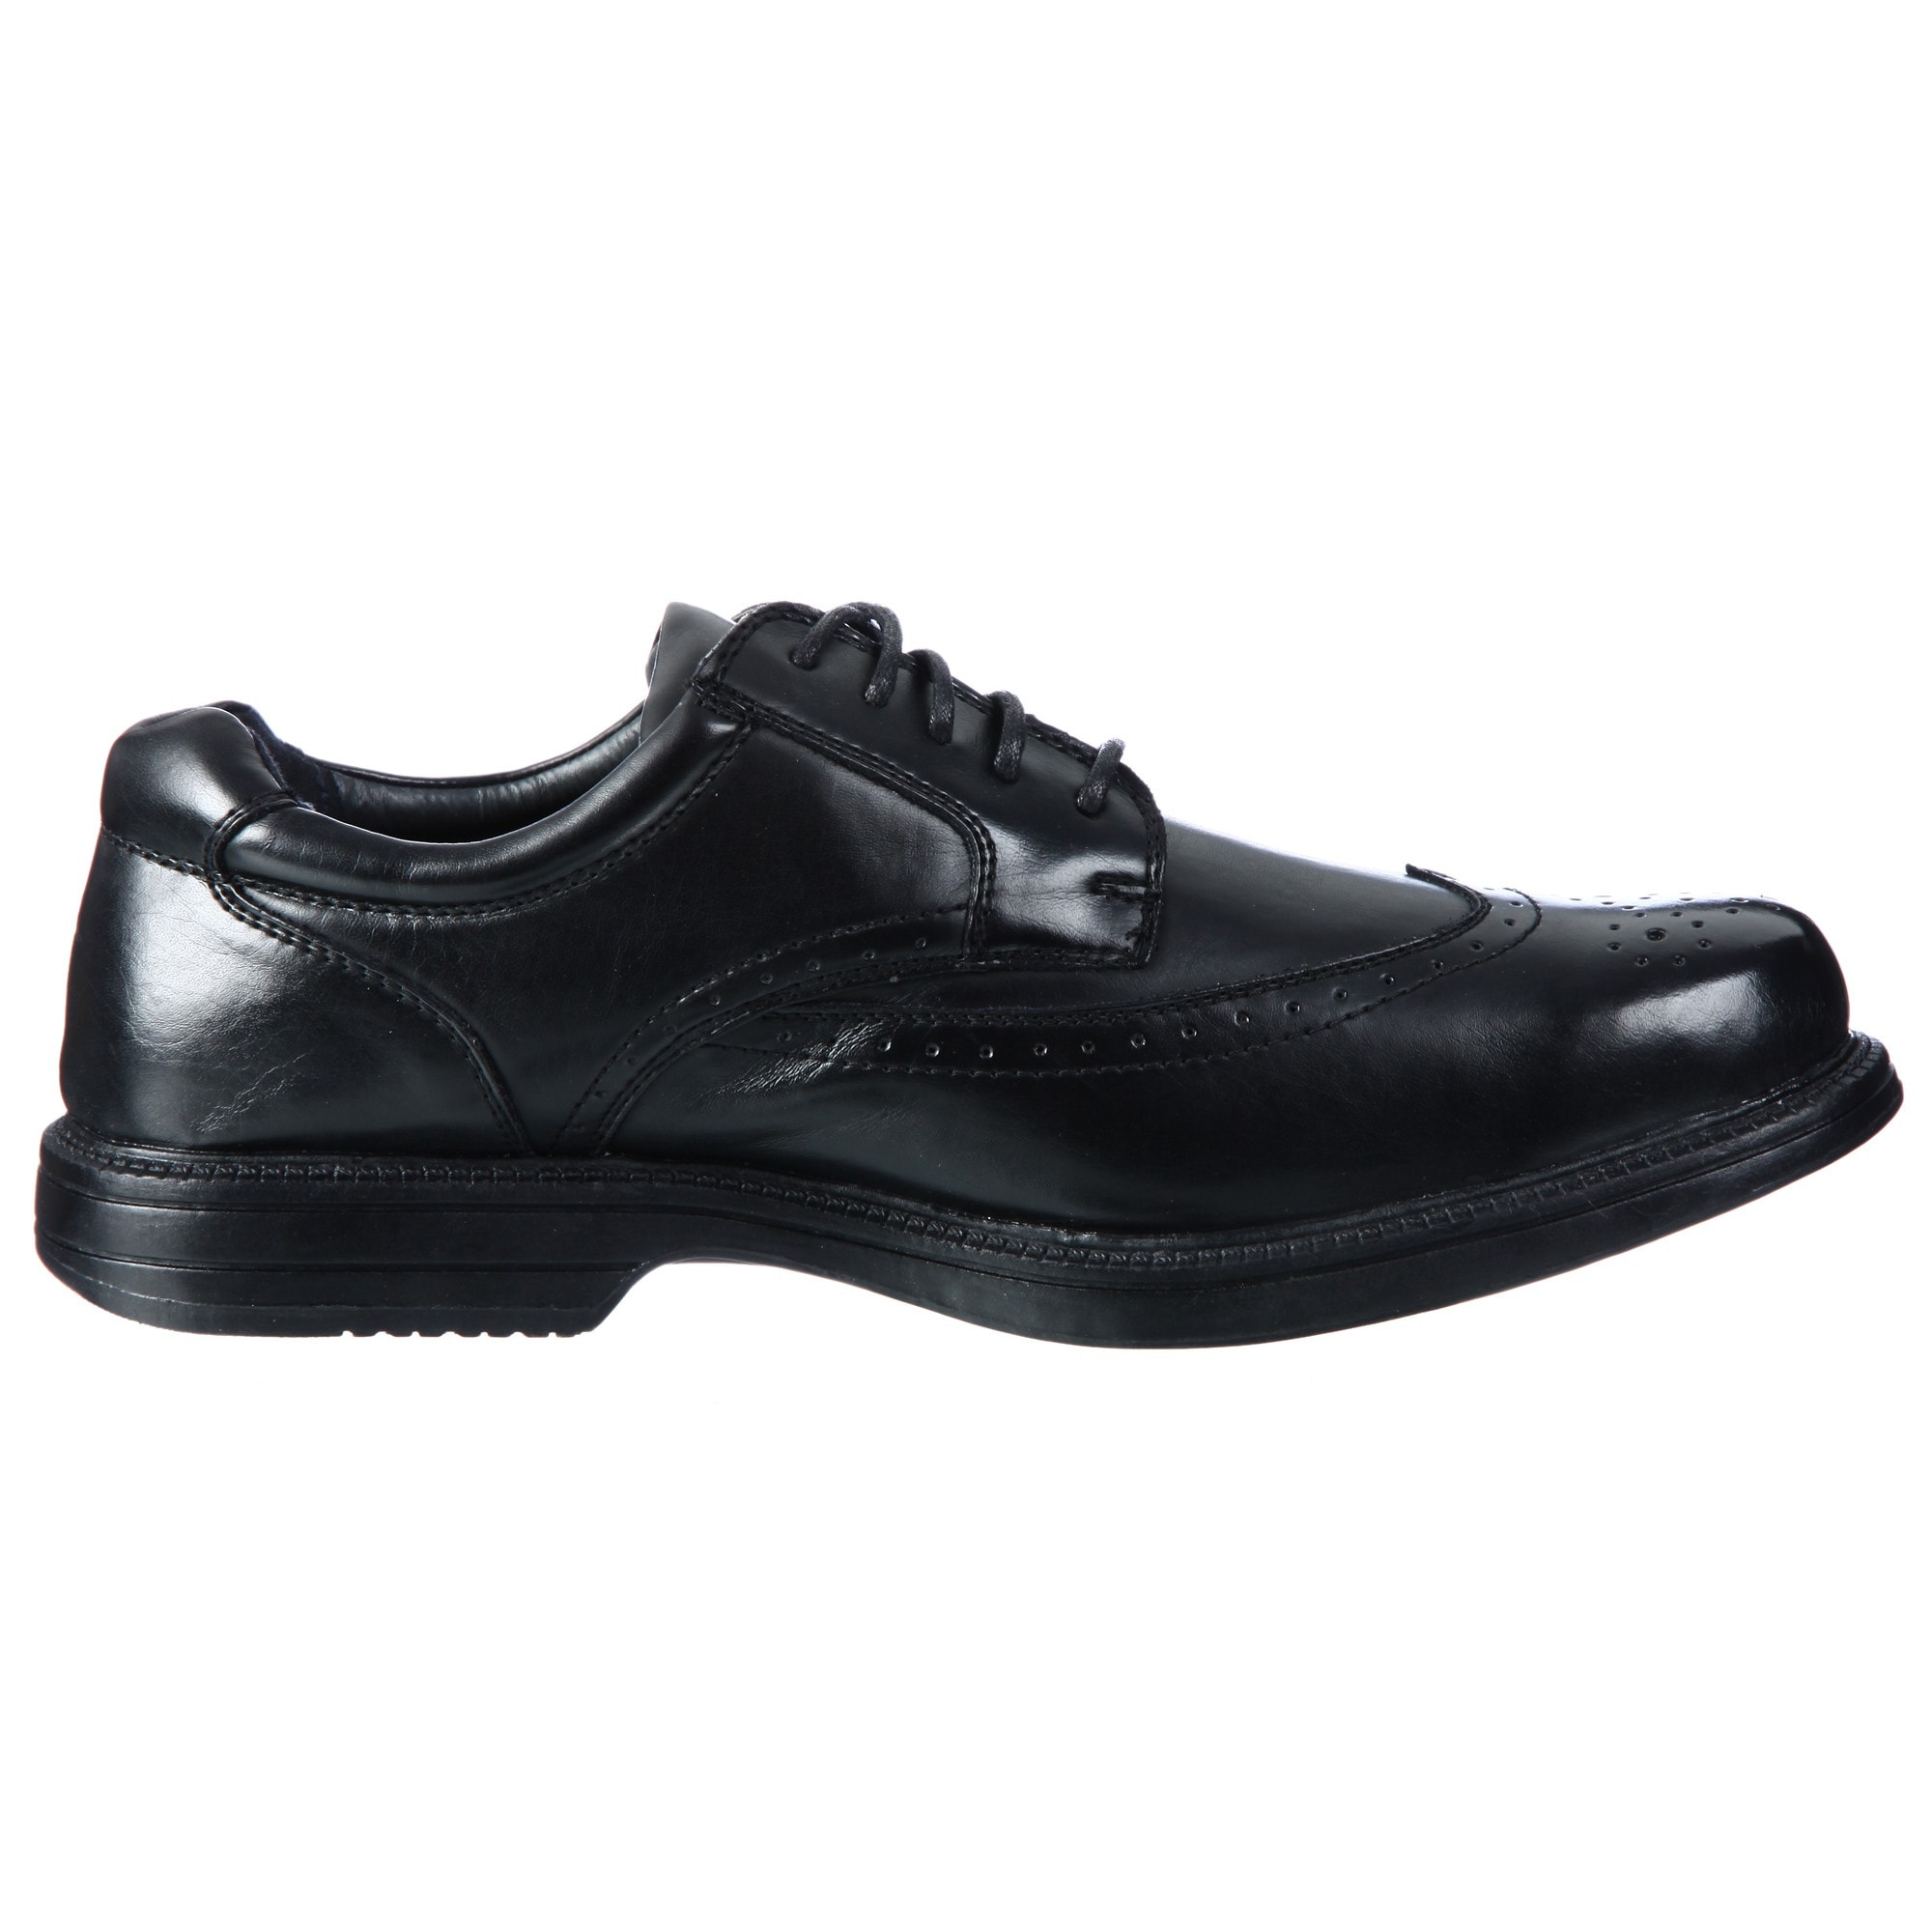 4400062d31a39e Shop Deer Stags Men s  Essex  Black Classic Wingtip Oxfords - Free Shipping  On Orders Over  45 - Overstock - 6537561